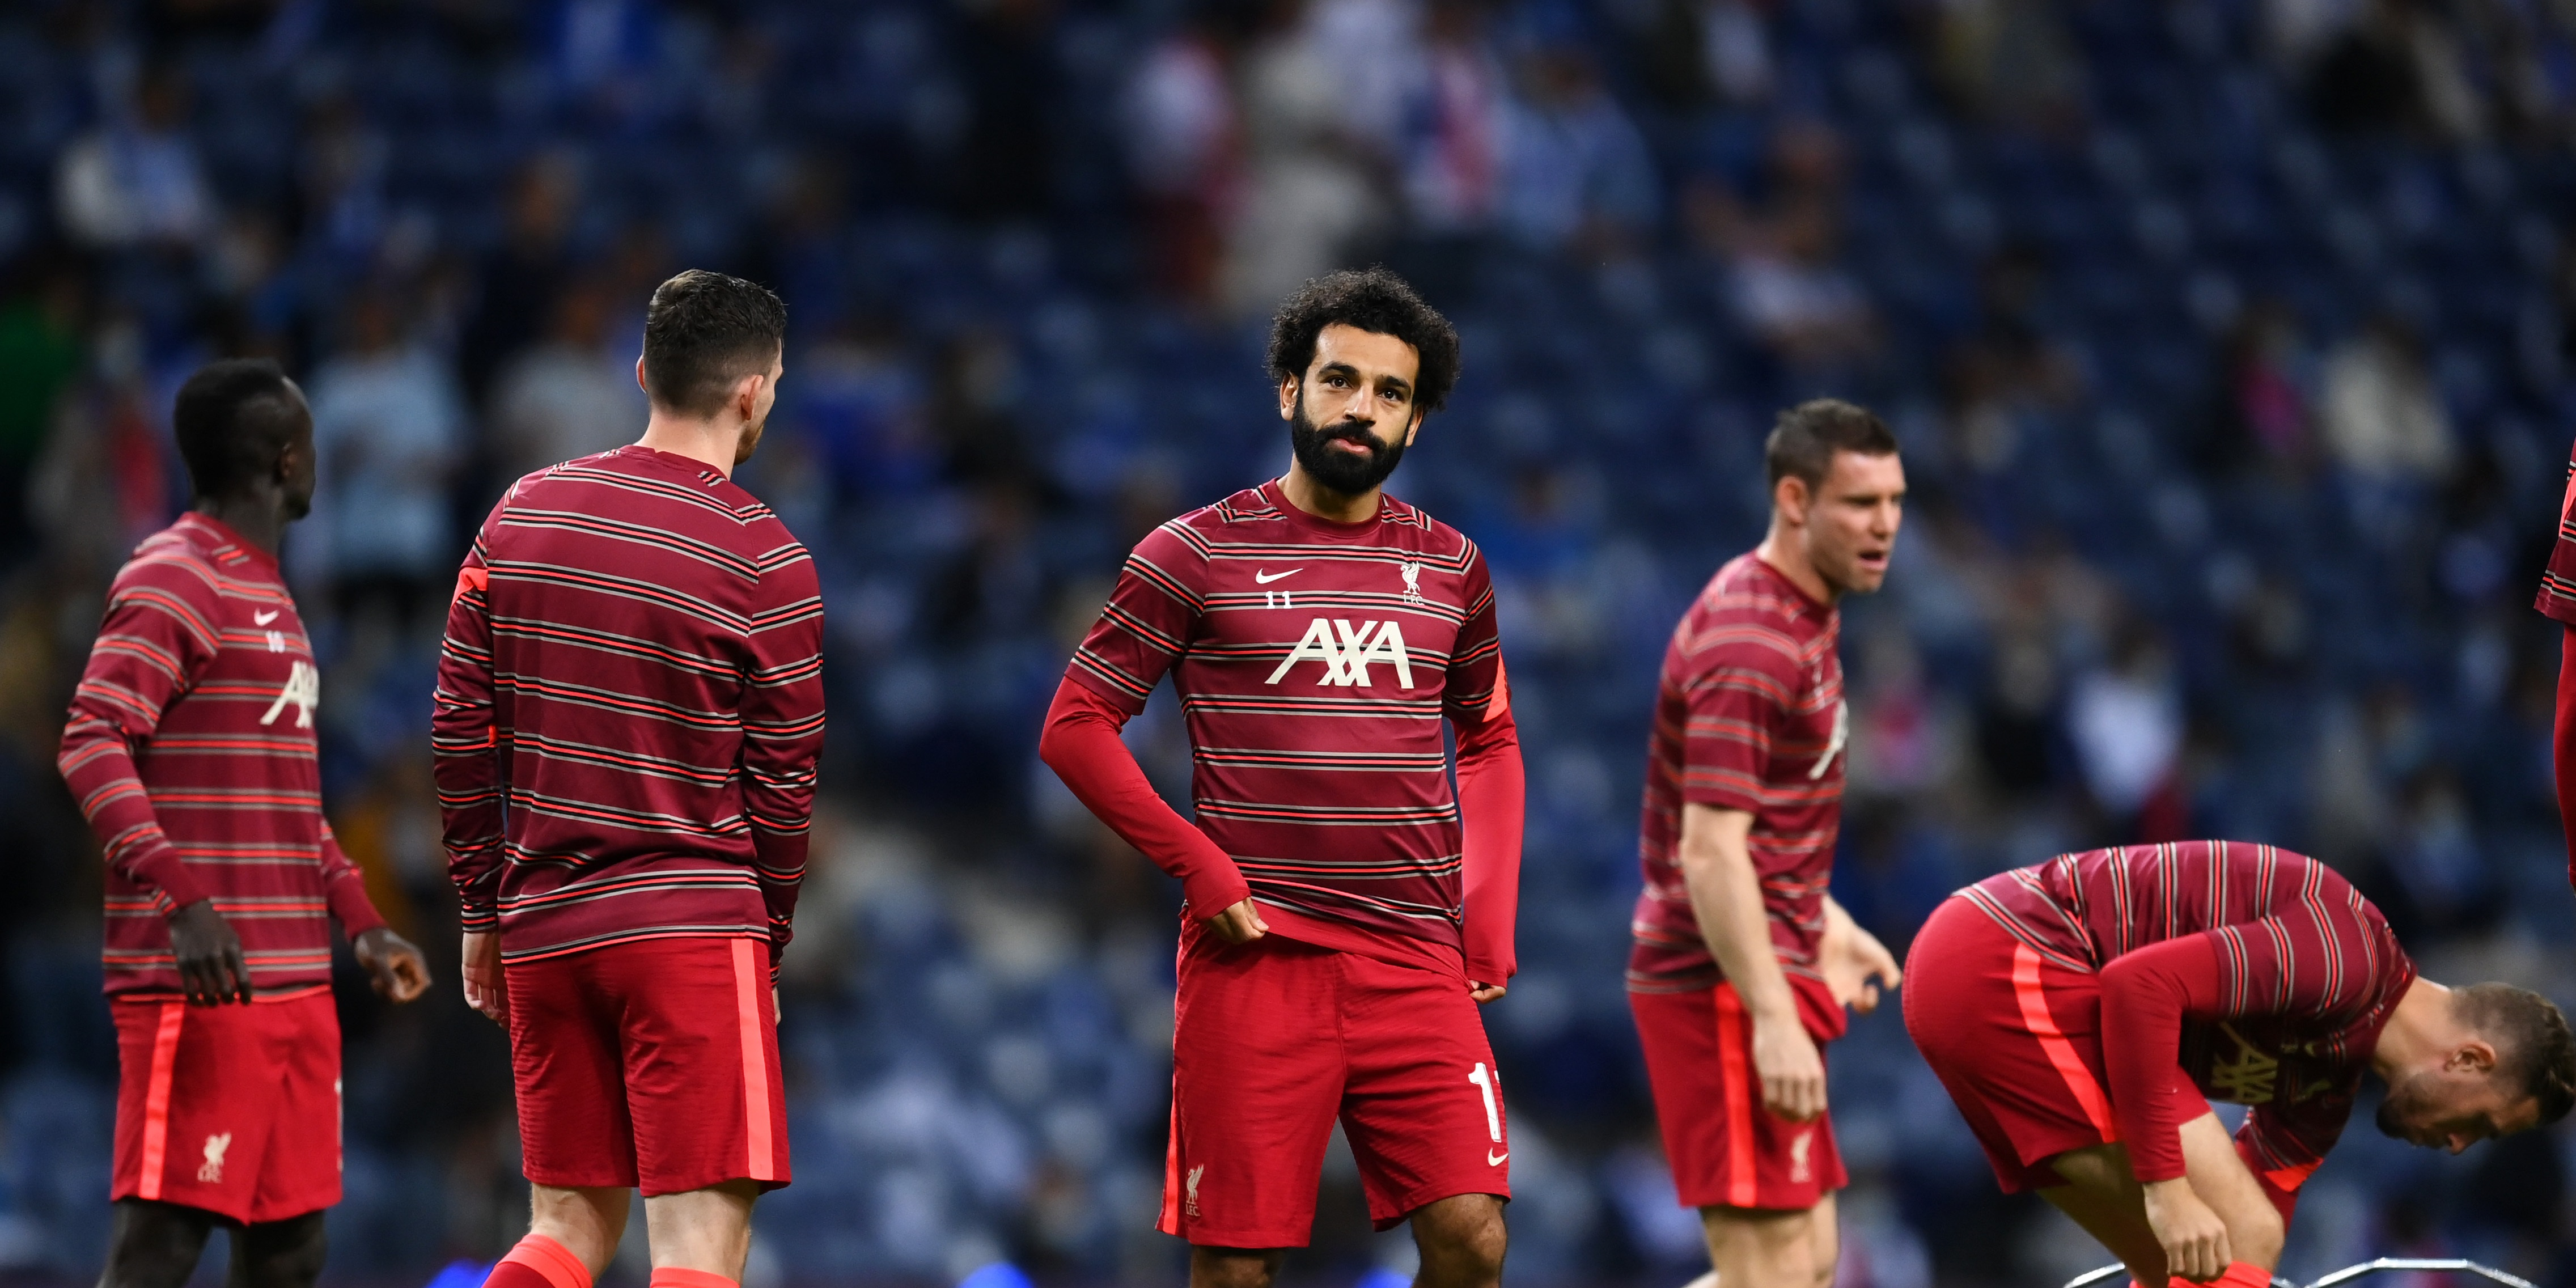 Finance expert shares what Liverpool must do to get the most value out of Salah